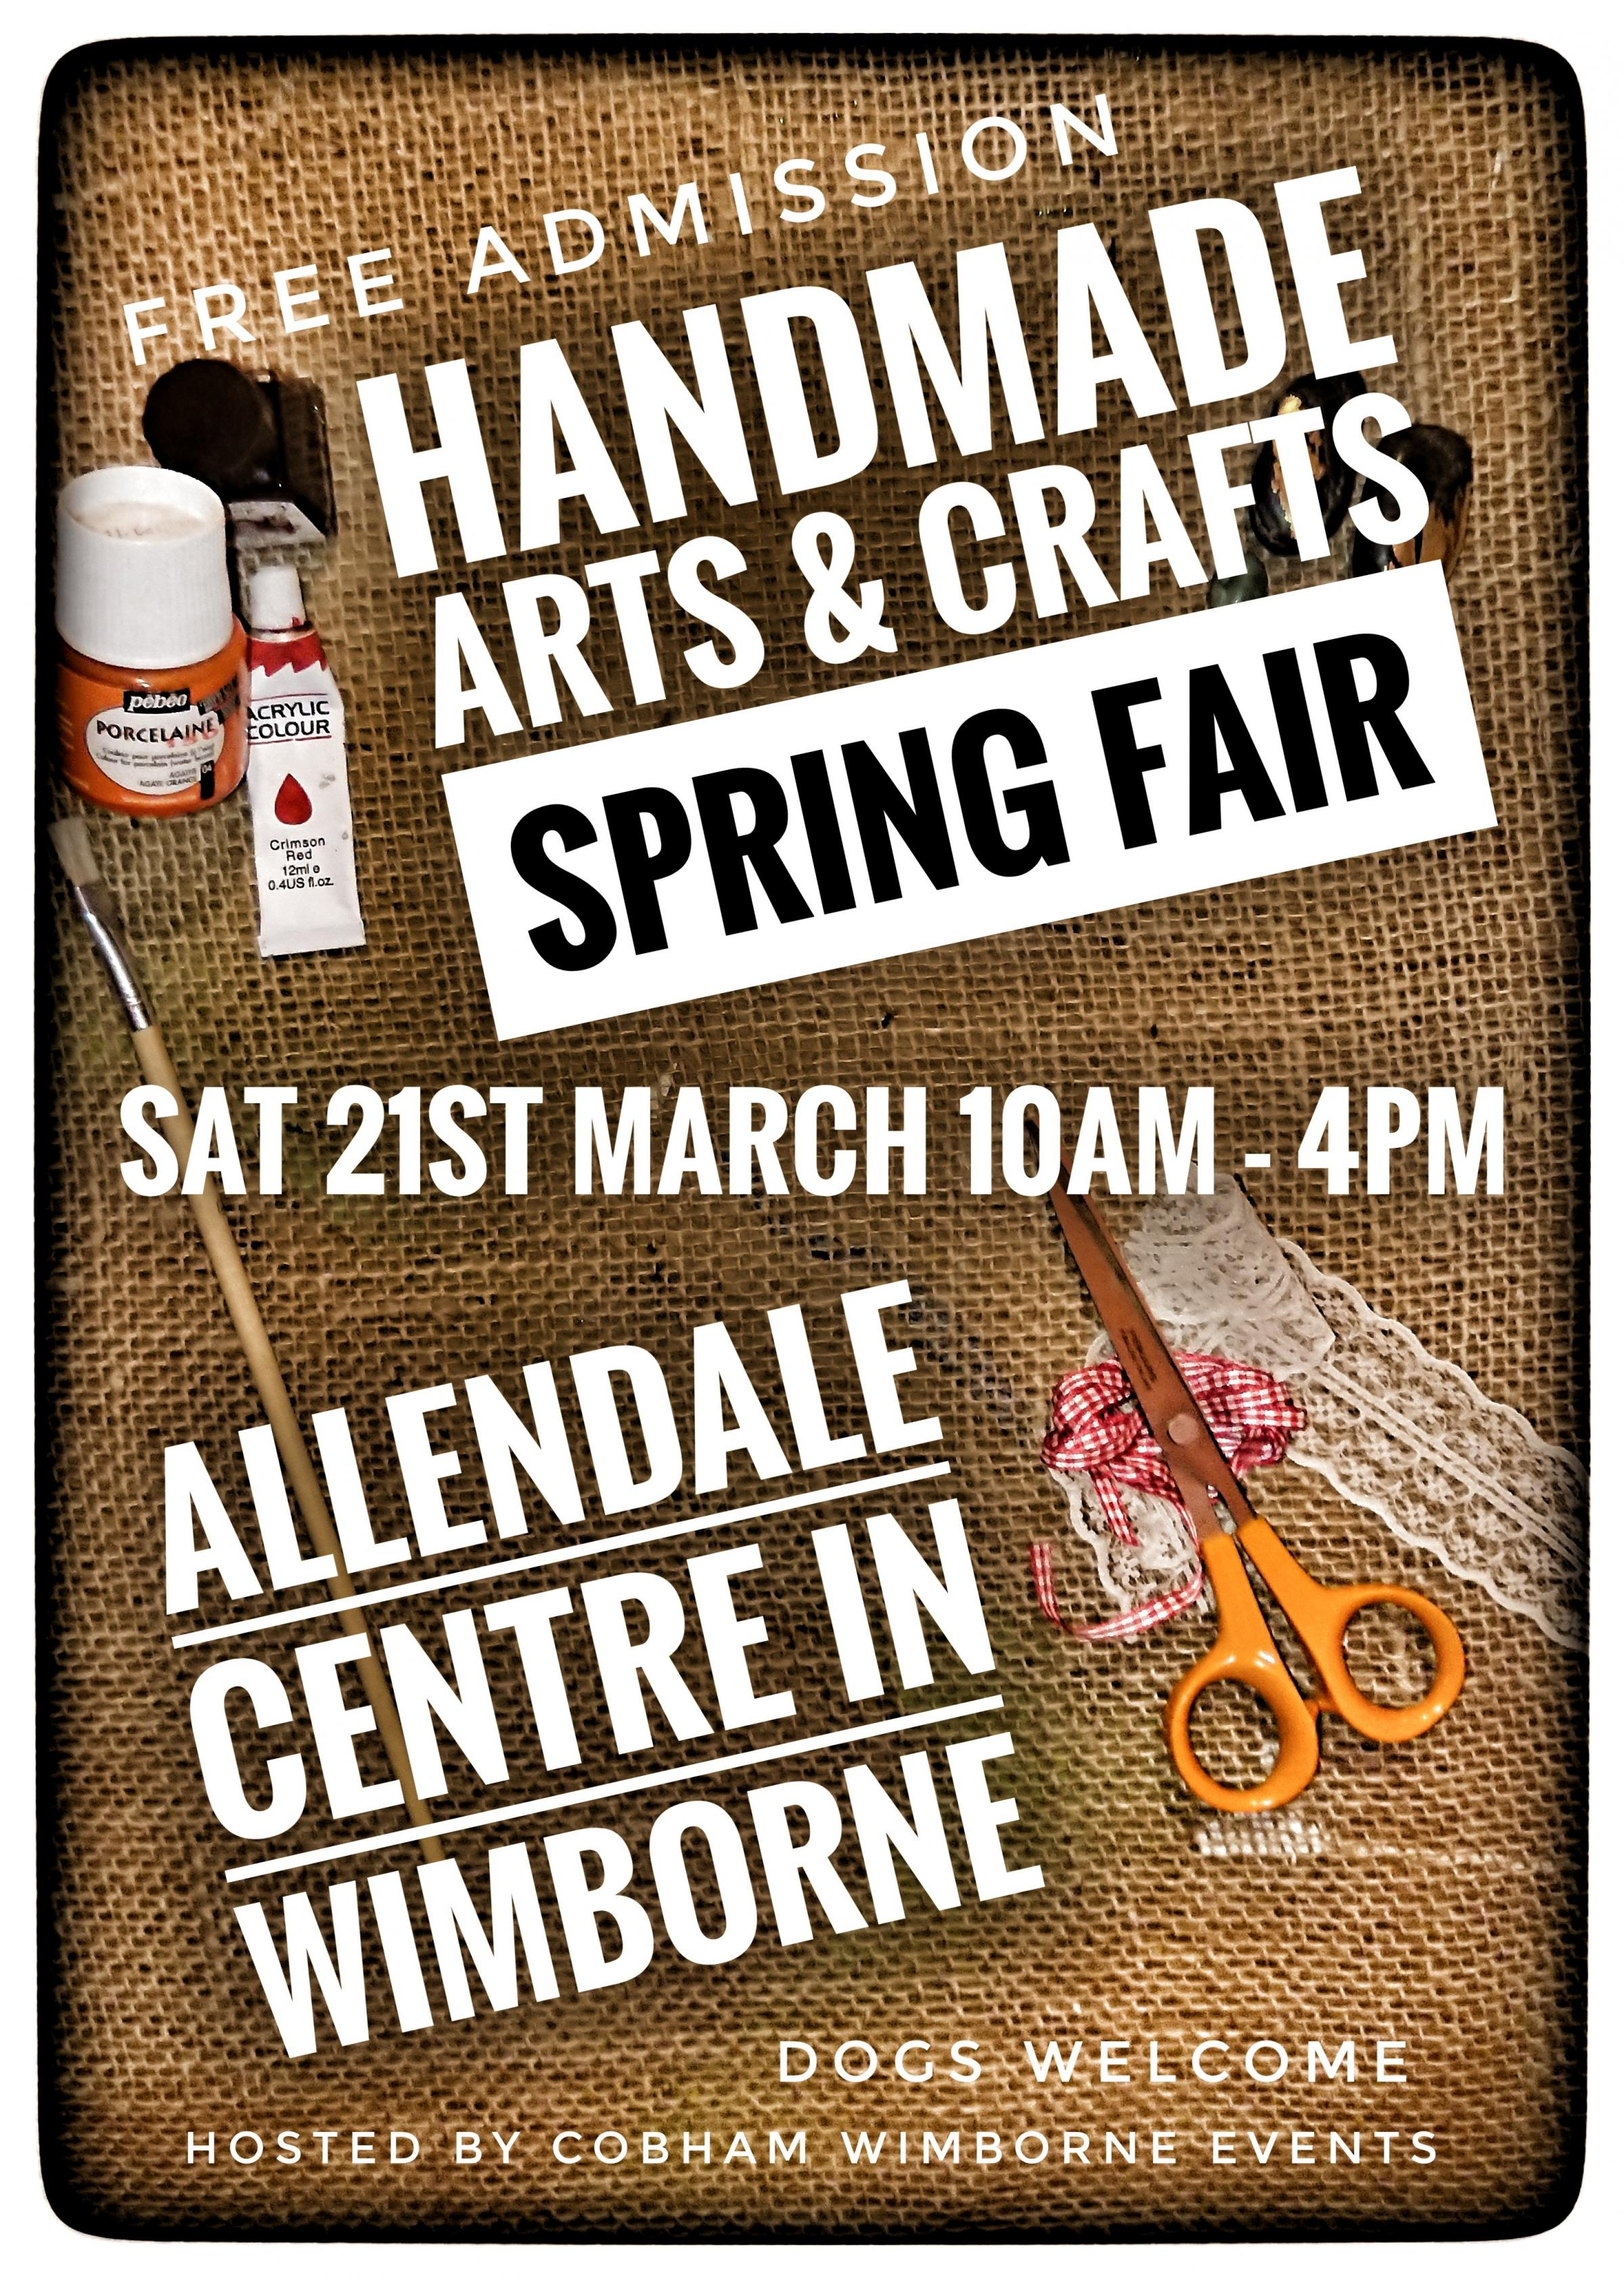 Handmade Arts & Crafts Spring Fair